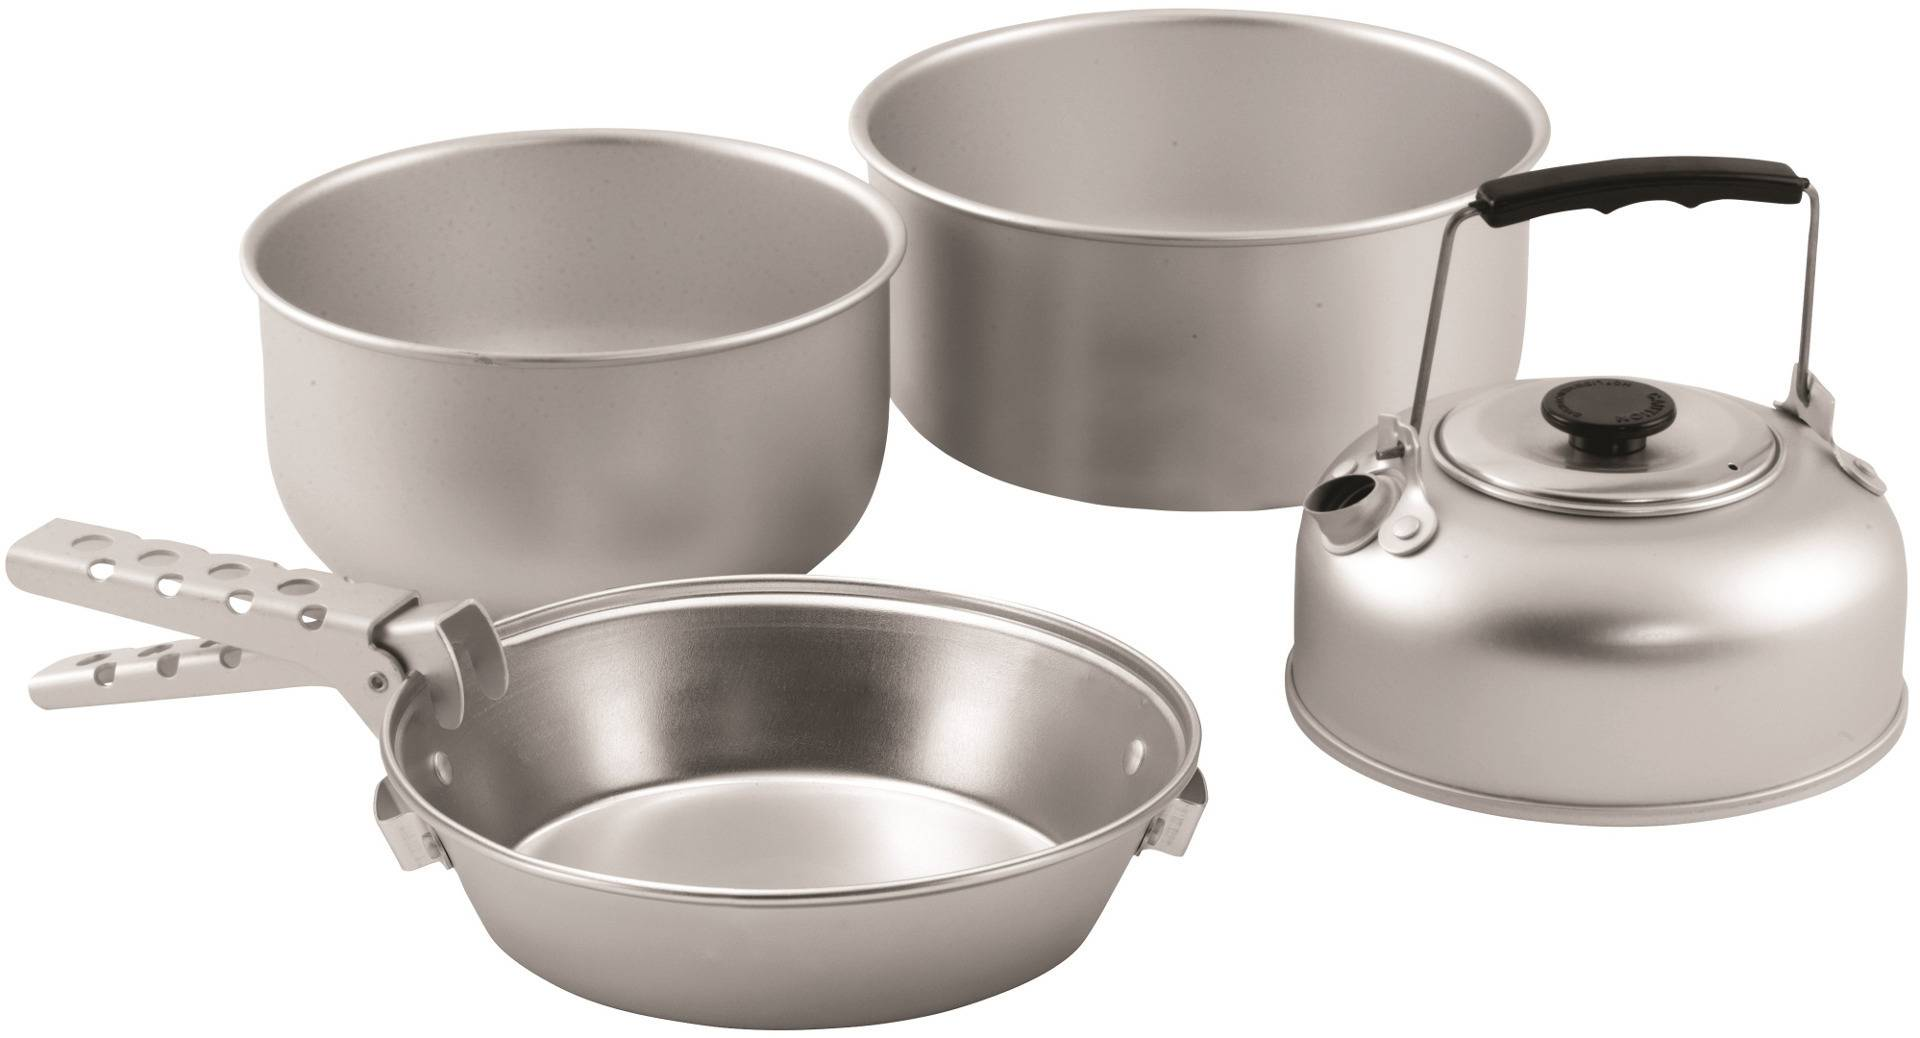 Easy Camp Adventure L Cook Set  - Size: Large